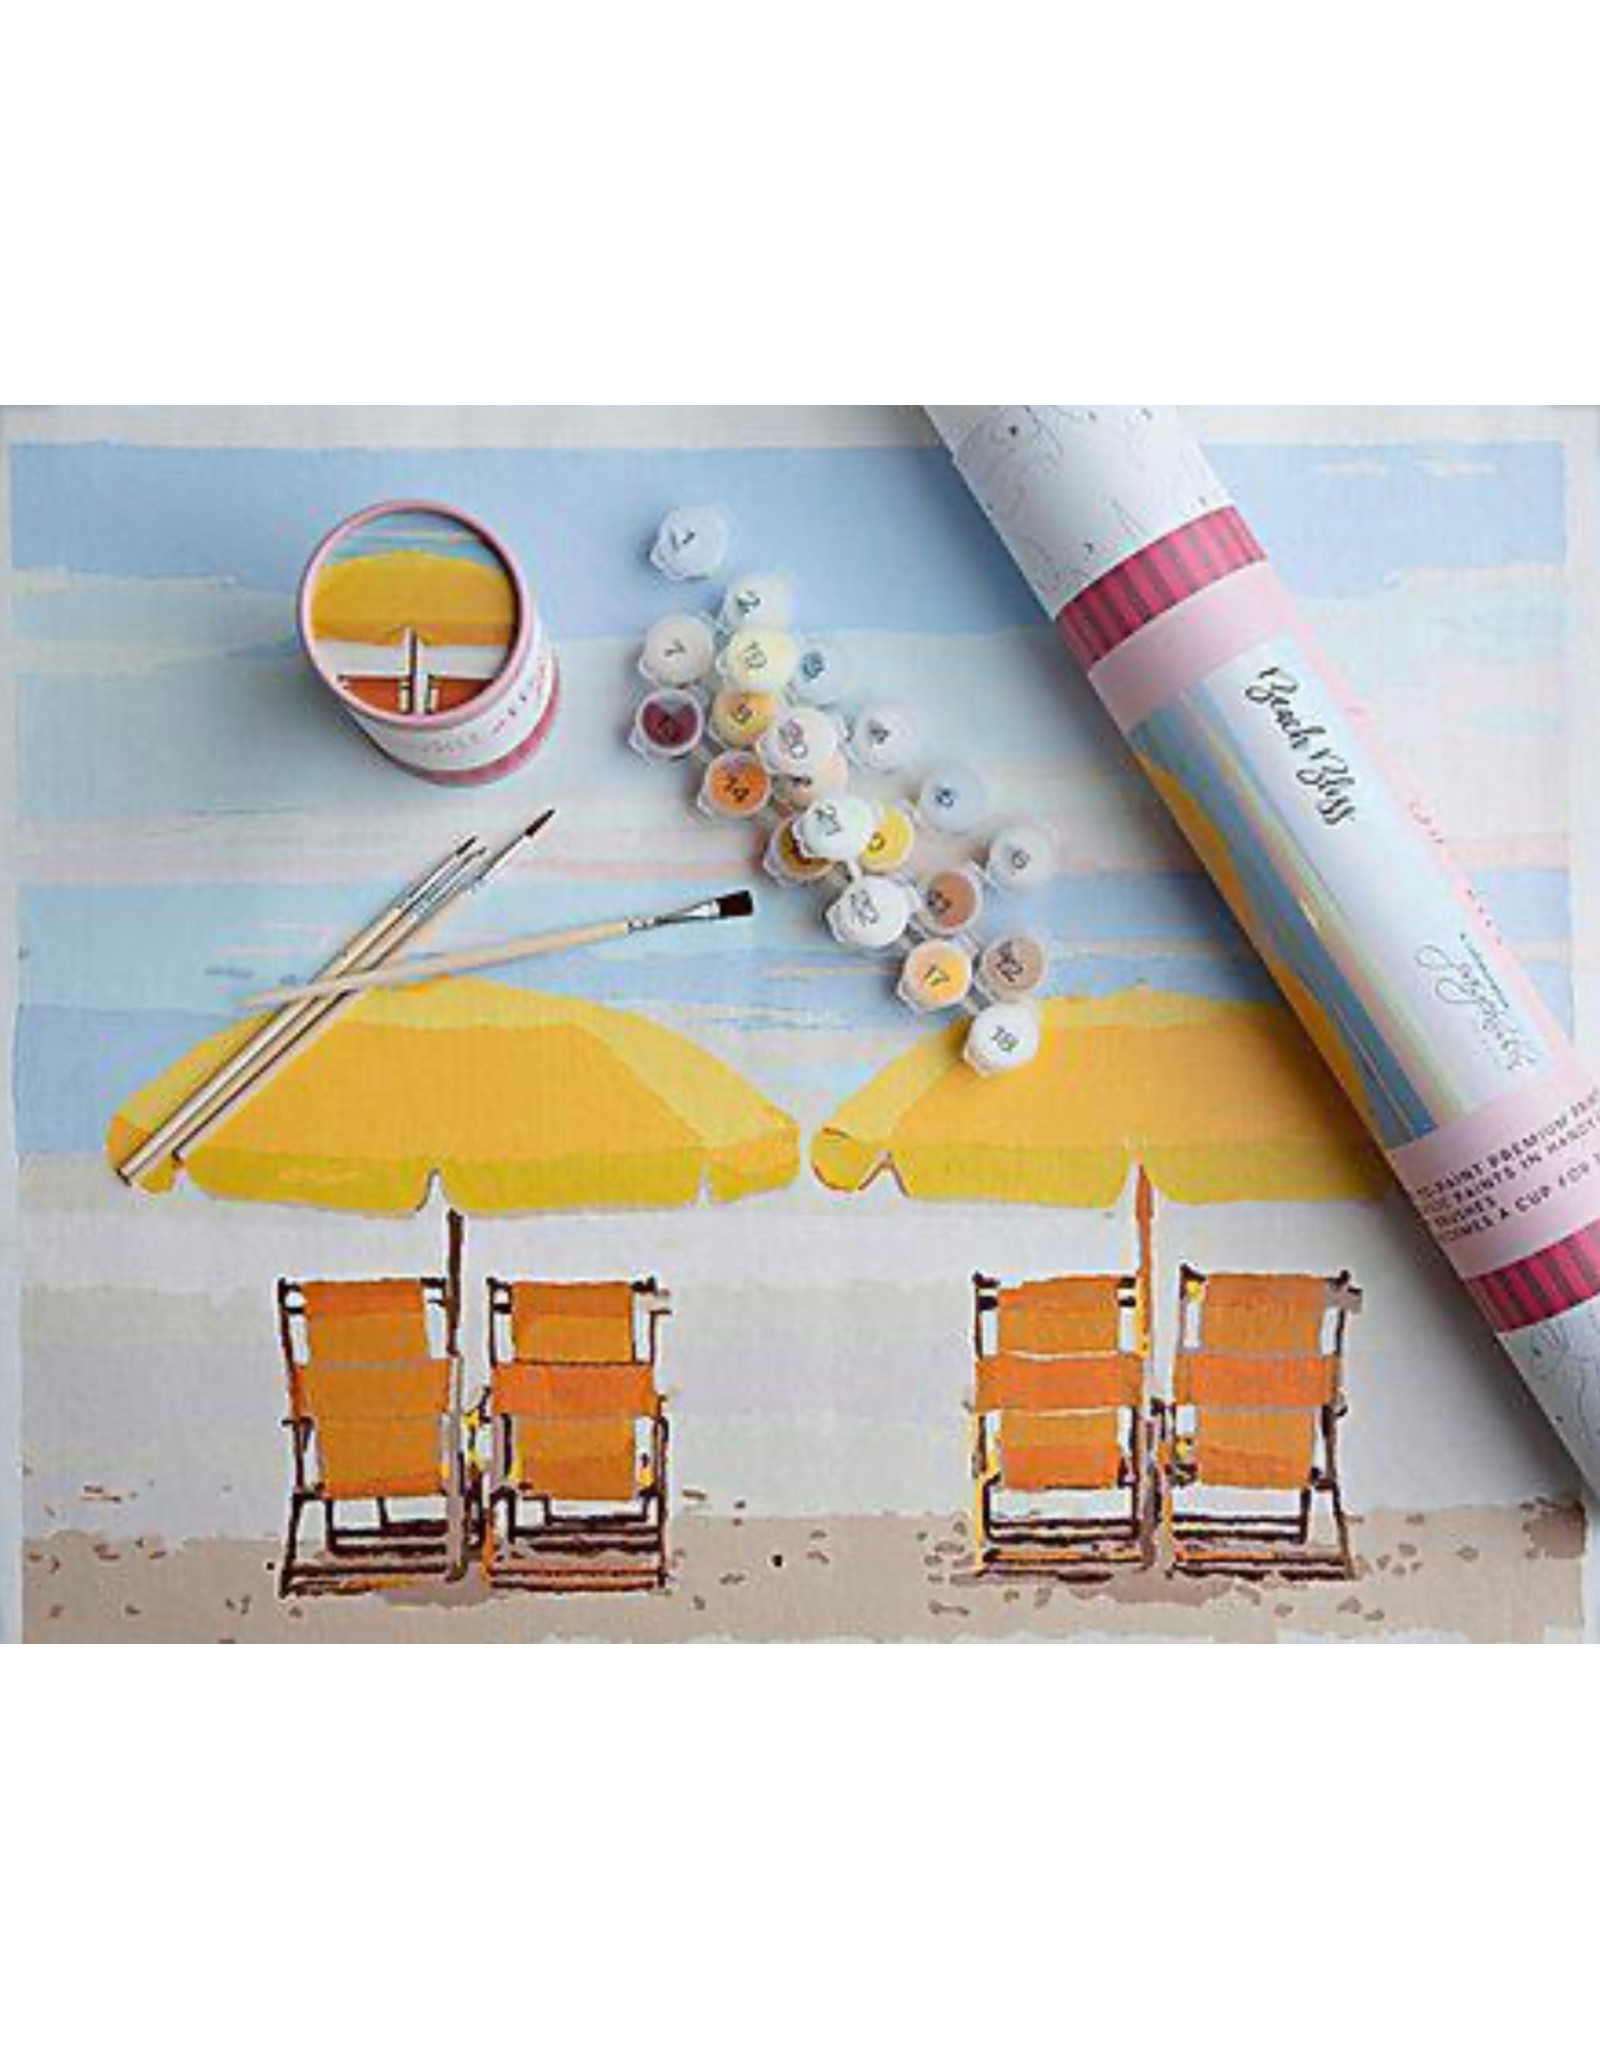 Paint By Number Kit - Assorted